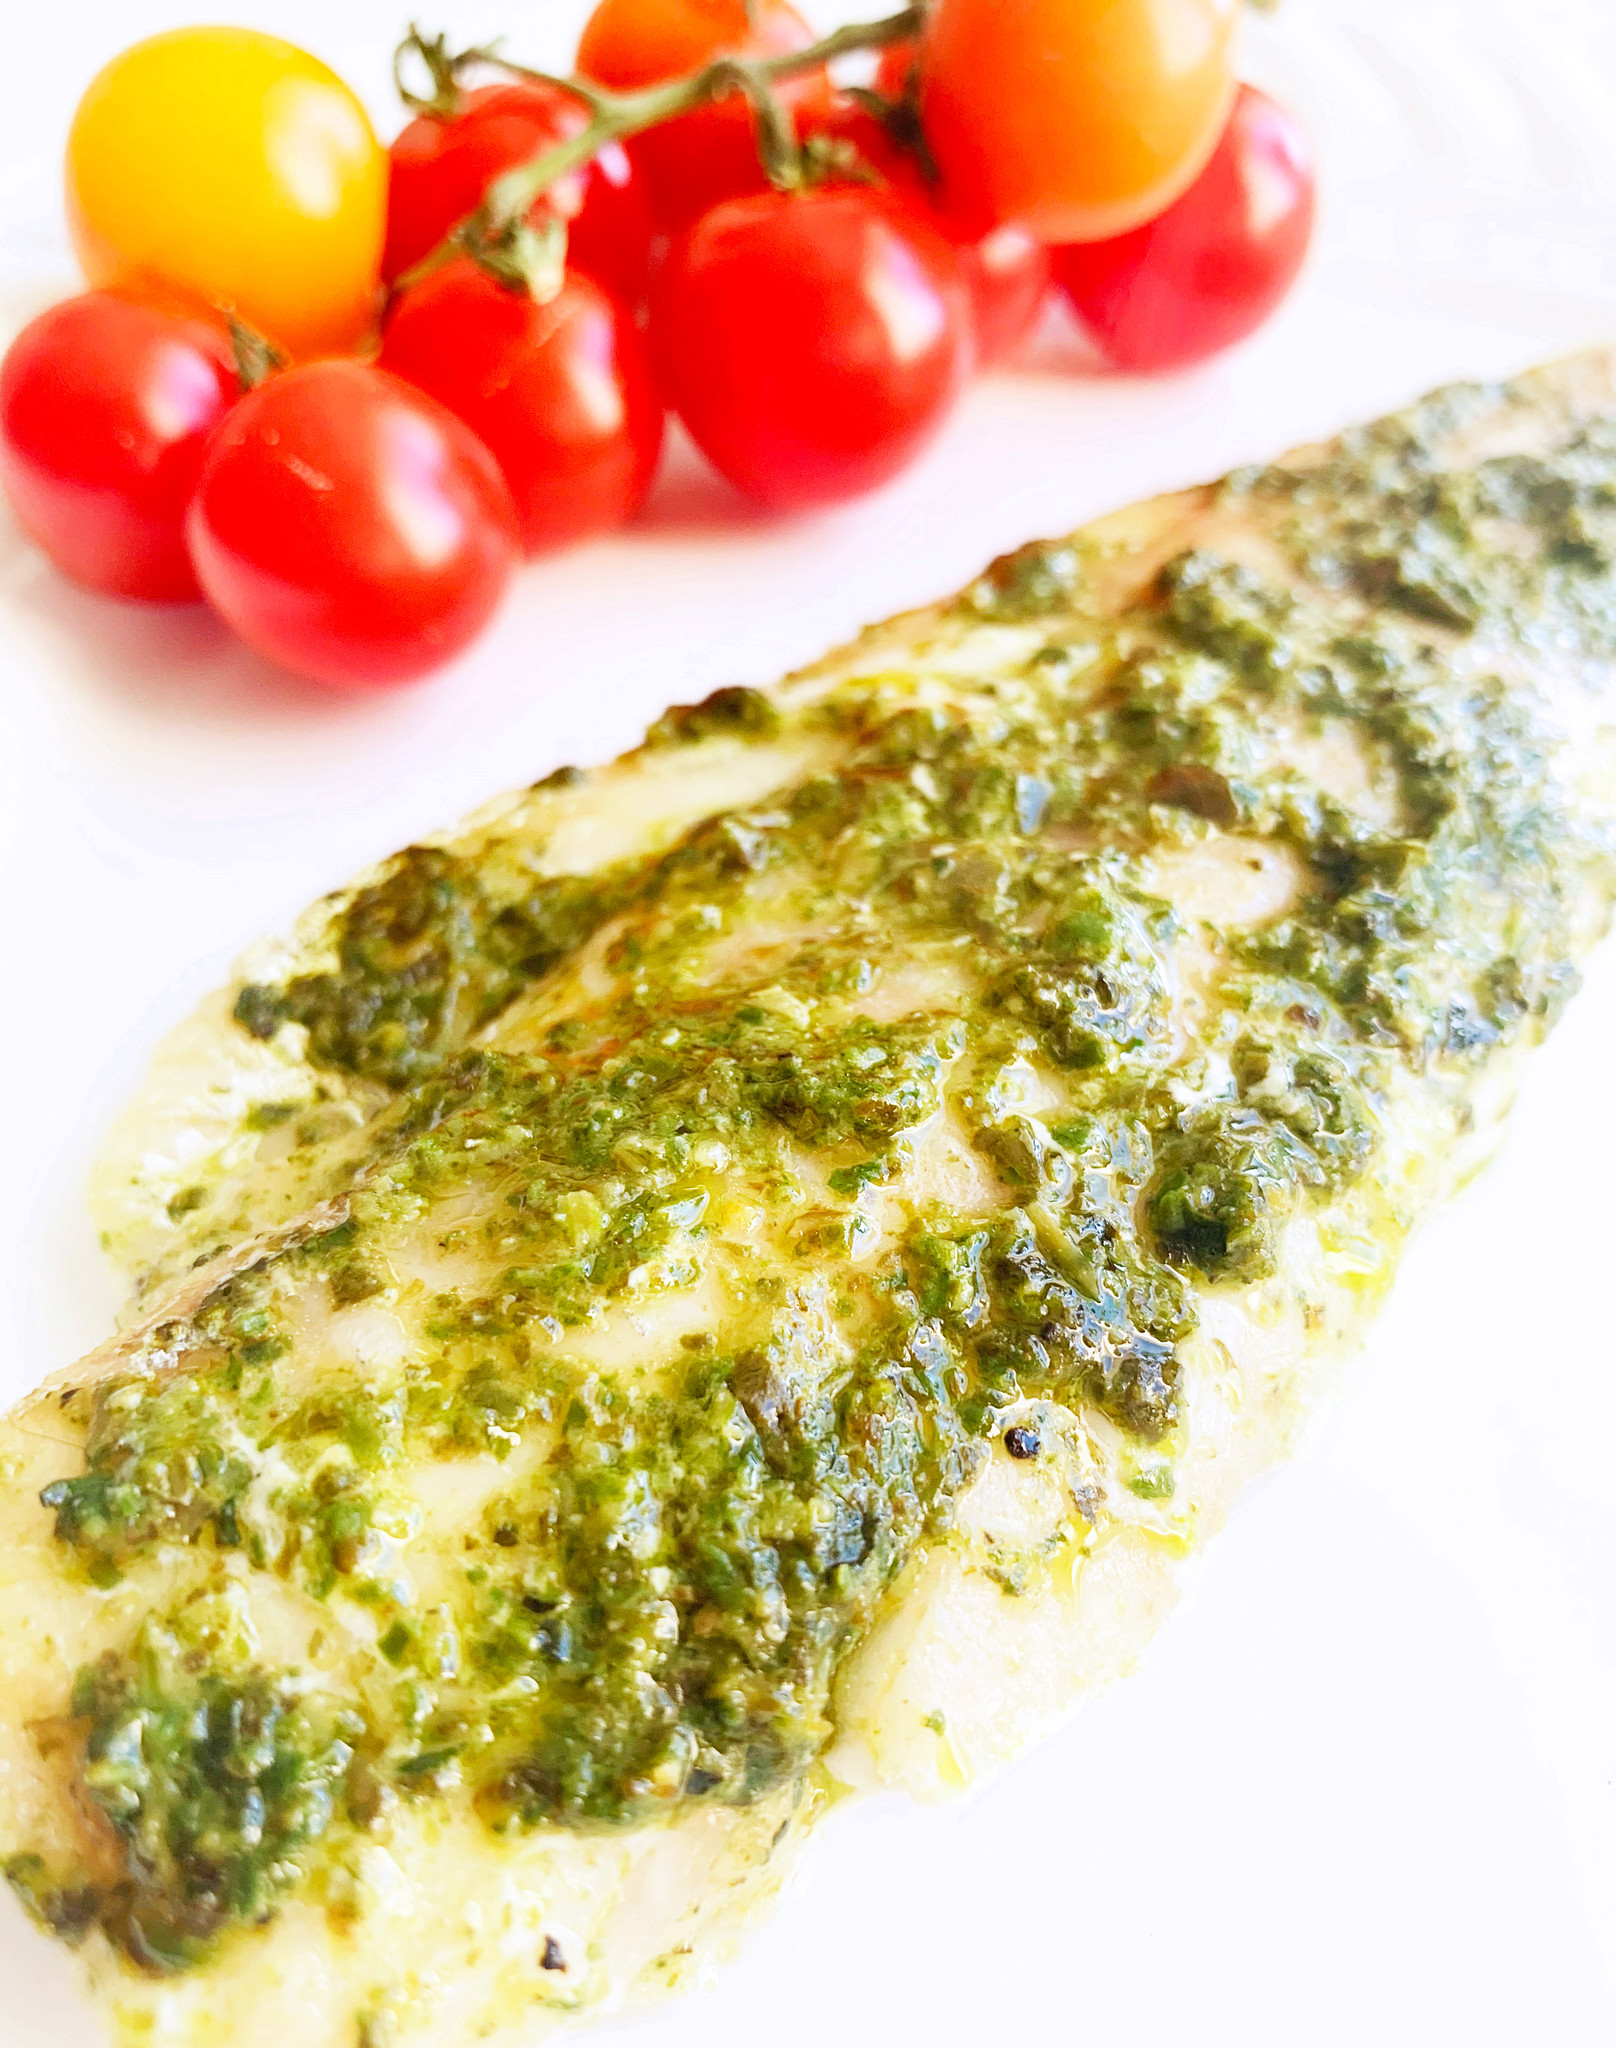 Cod with homemade spinach pesto